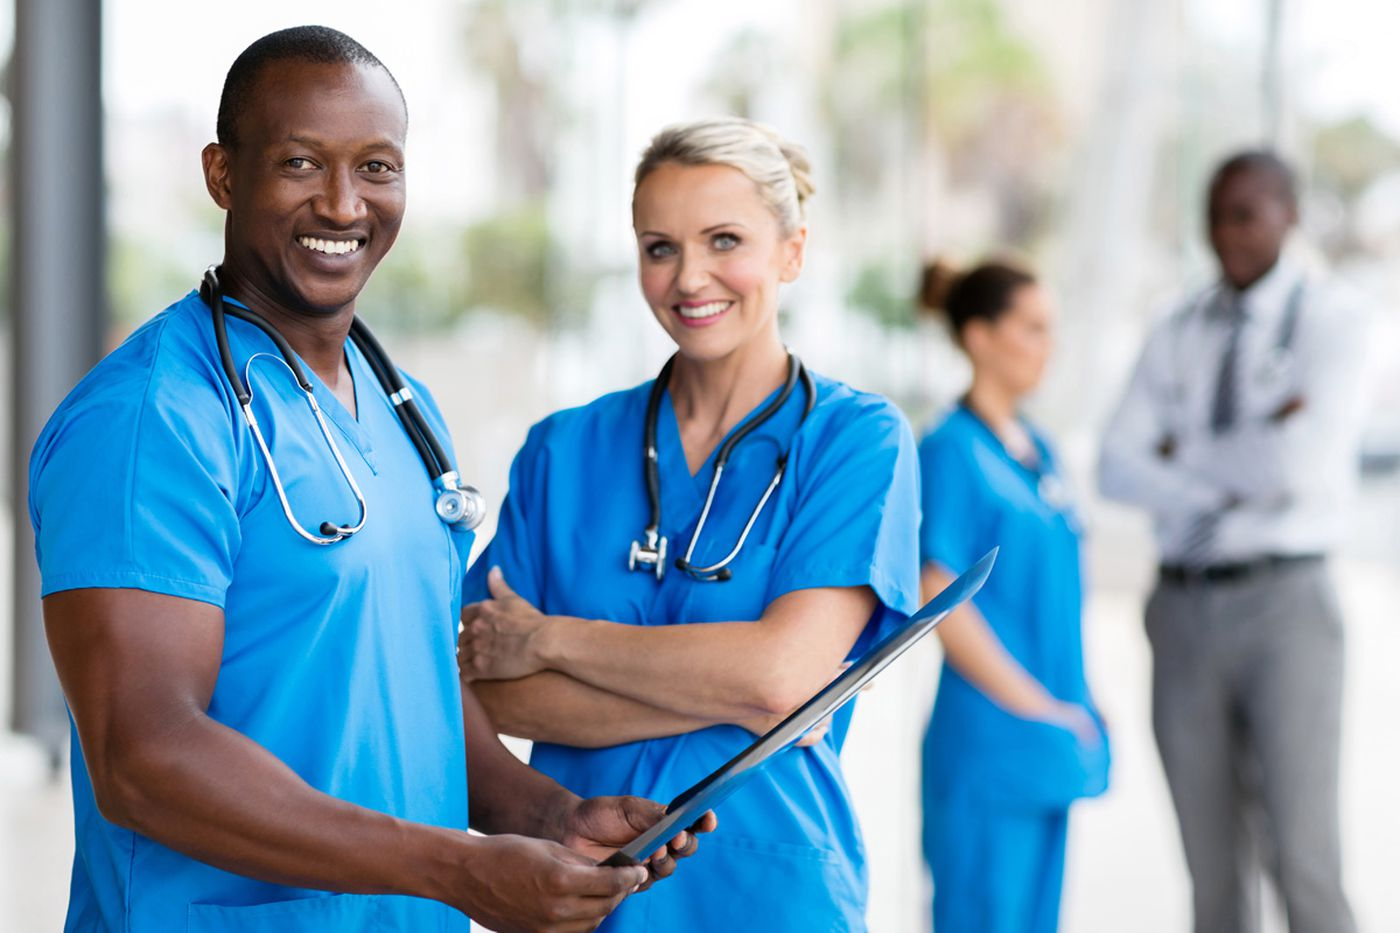 Opening the healthcare profession pipeline for every student in Philadelphia